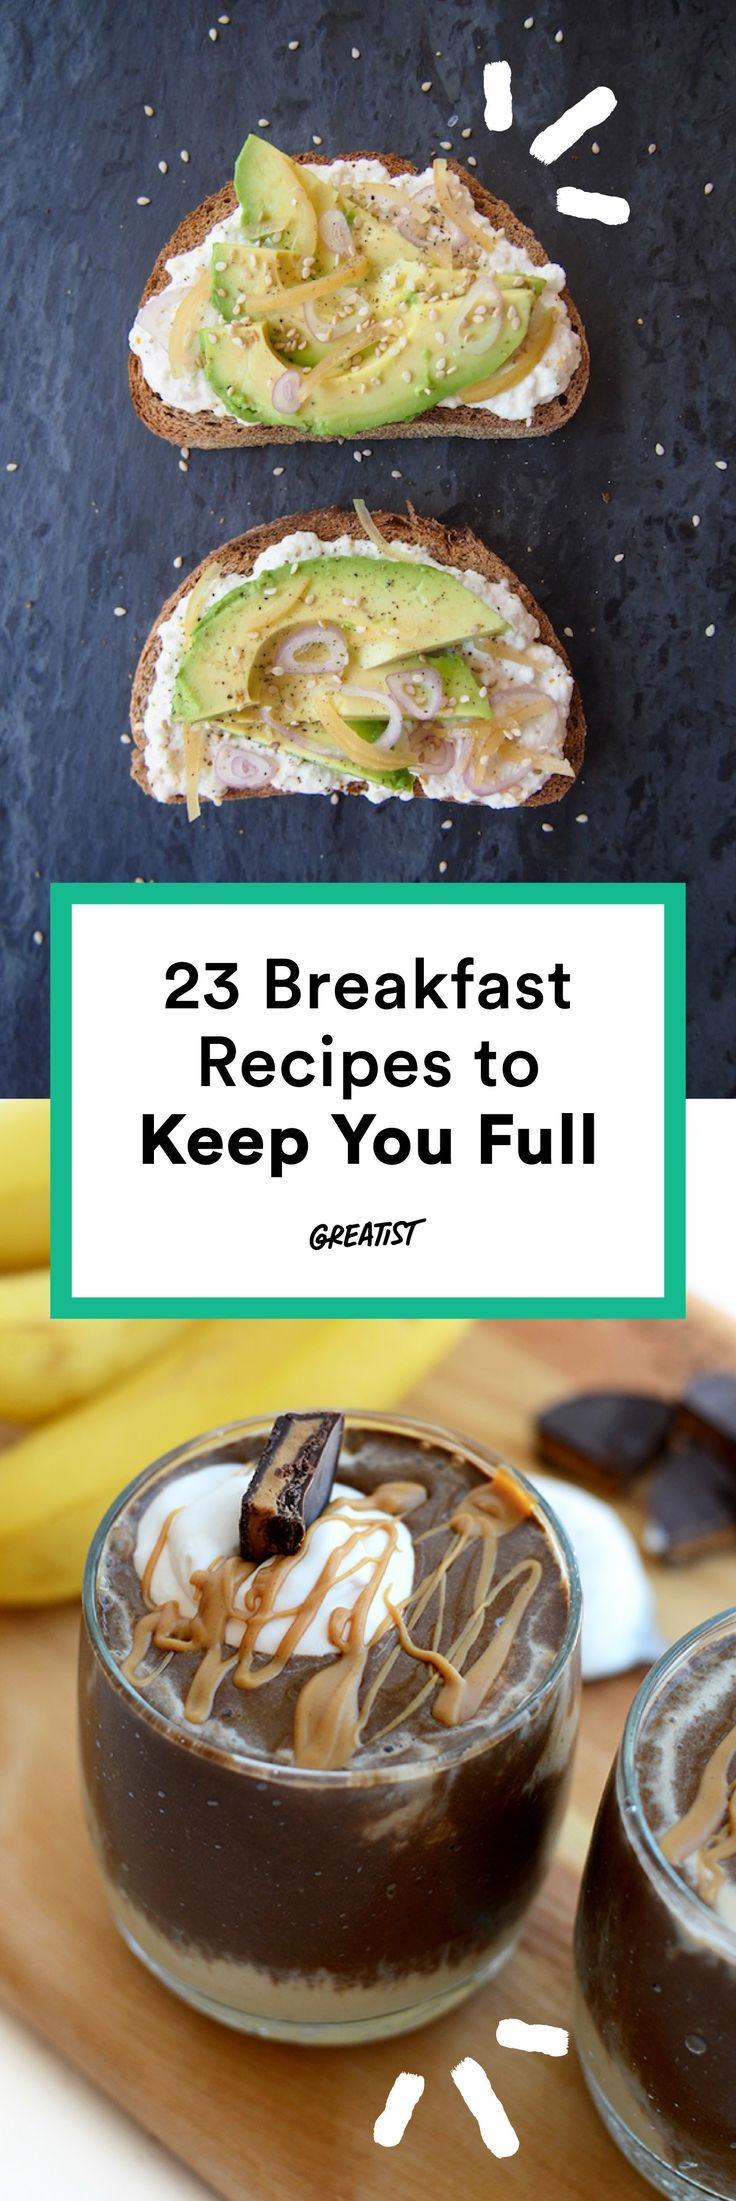 23 HighProtein Breakfasts to Keep You Full All Morning